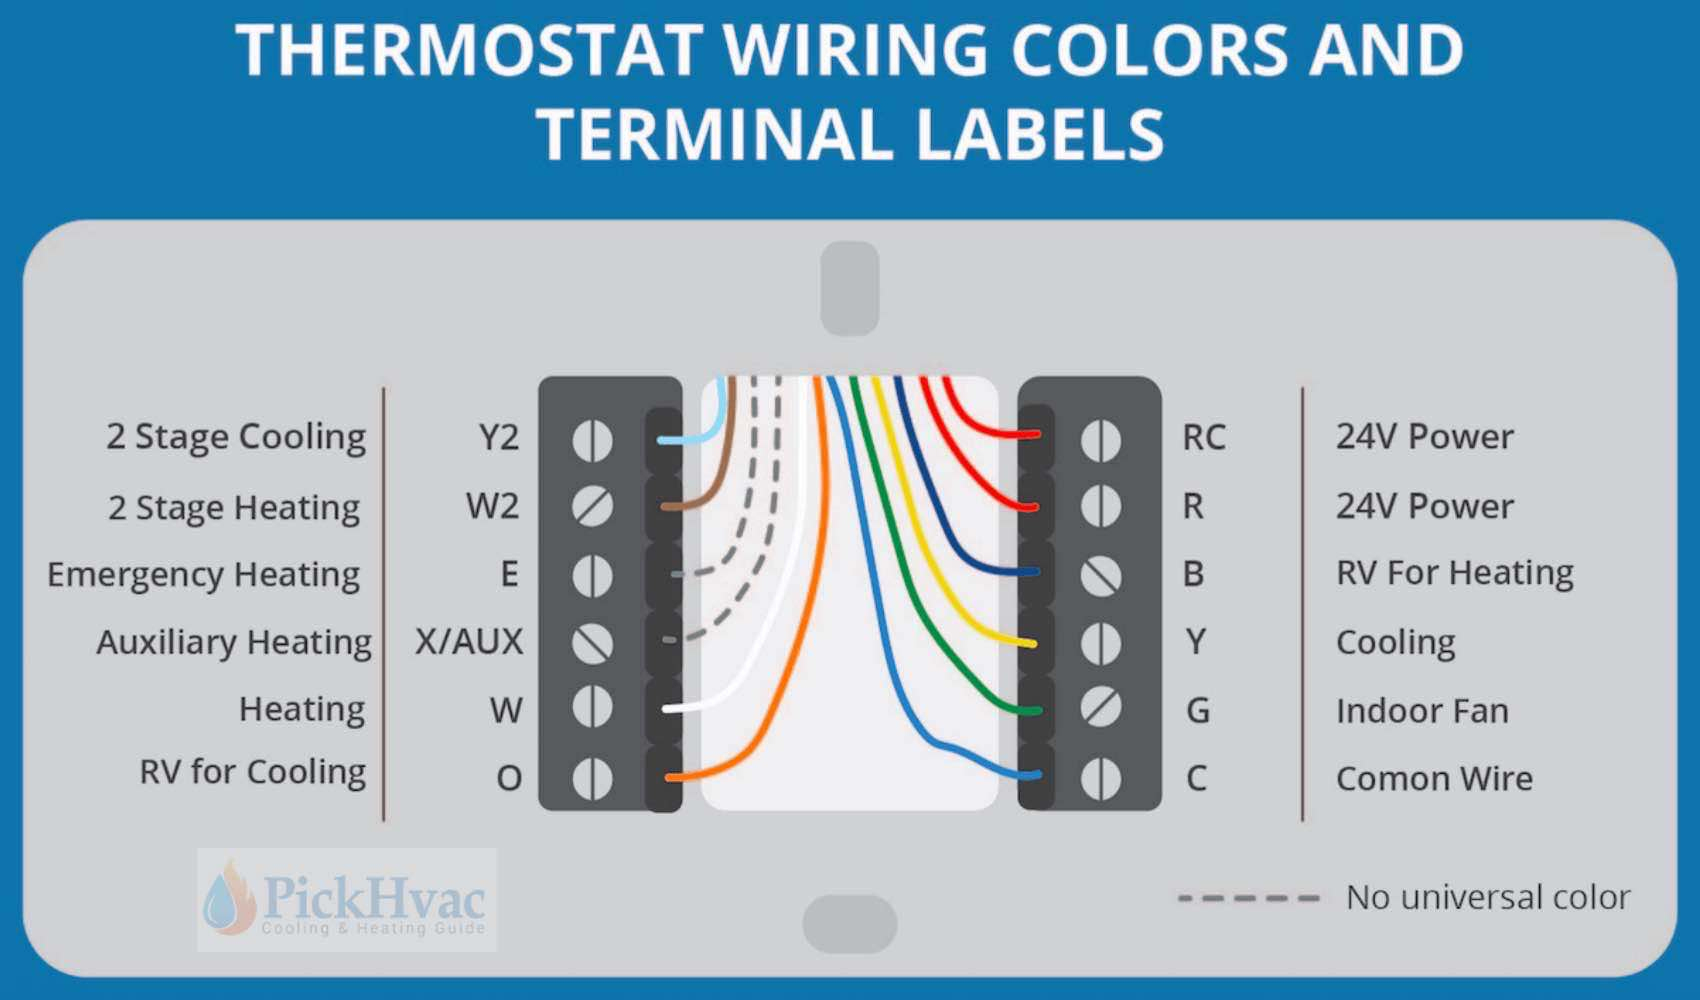 Thermostat Wiring Guide - Wiring Diagrams Click - Nest Wiring Diagram With Labels